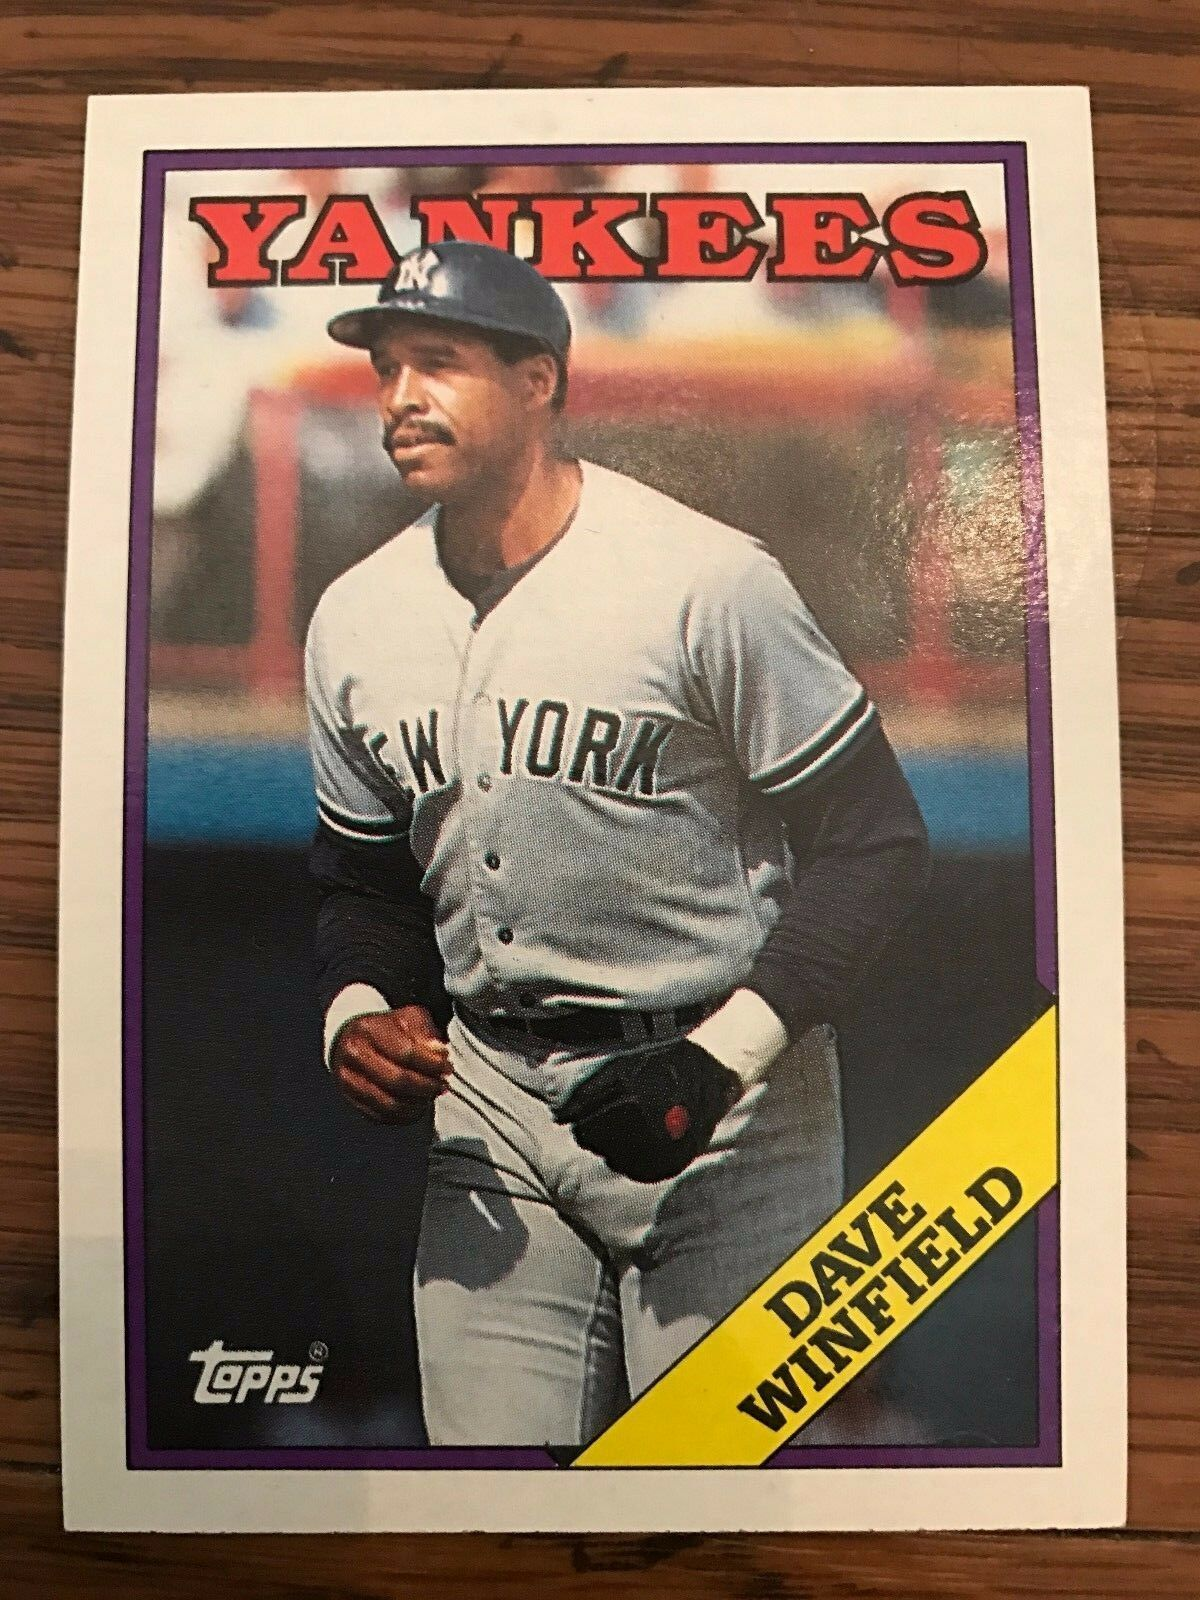 1988 Topps Chewing Gum Baseball Cards Value Applydocoumentco